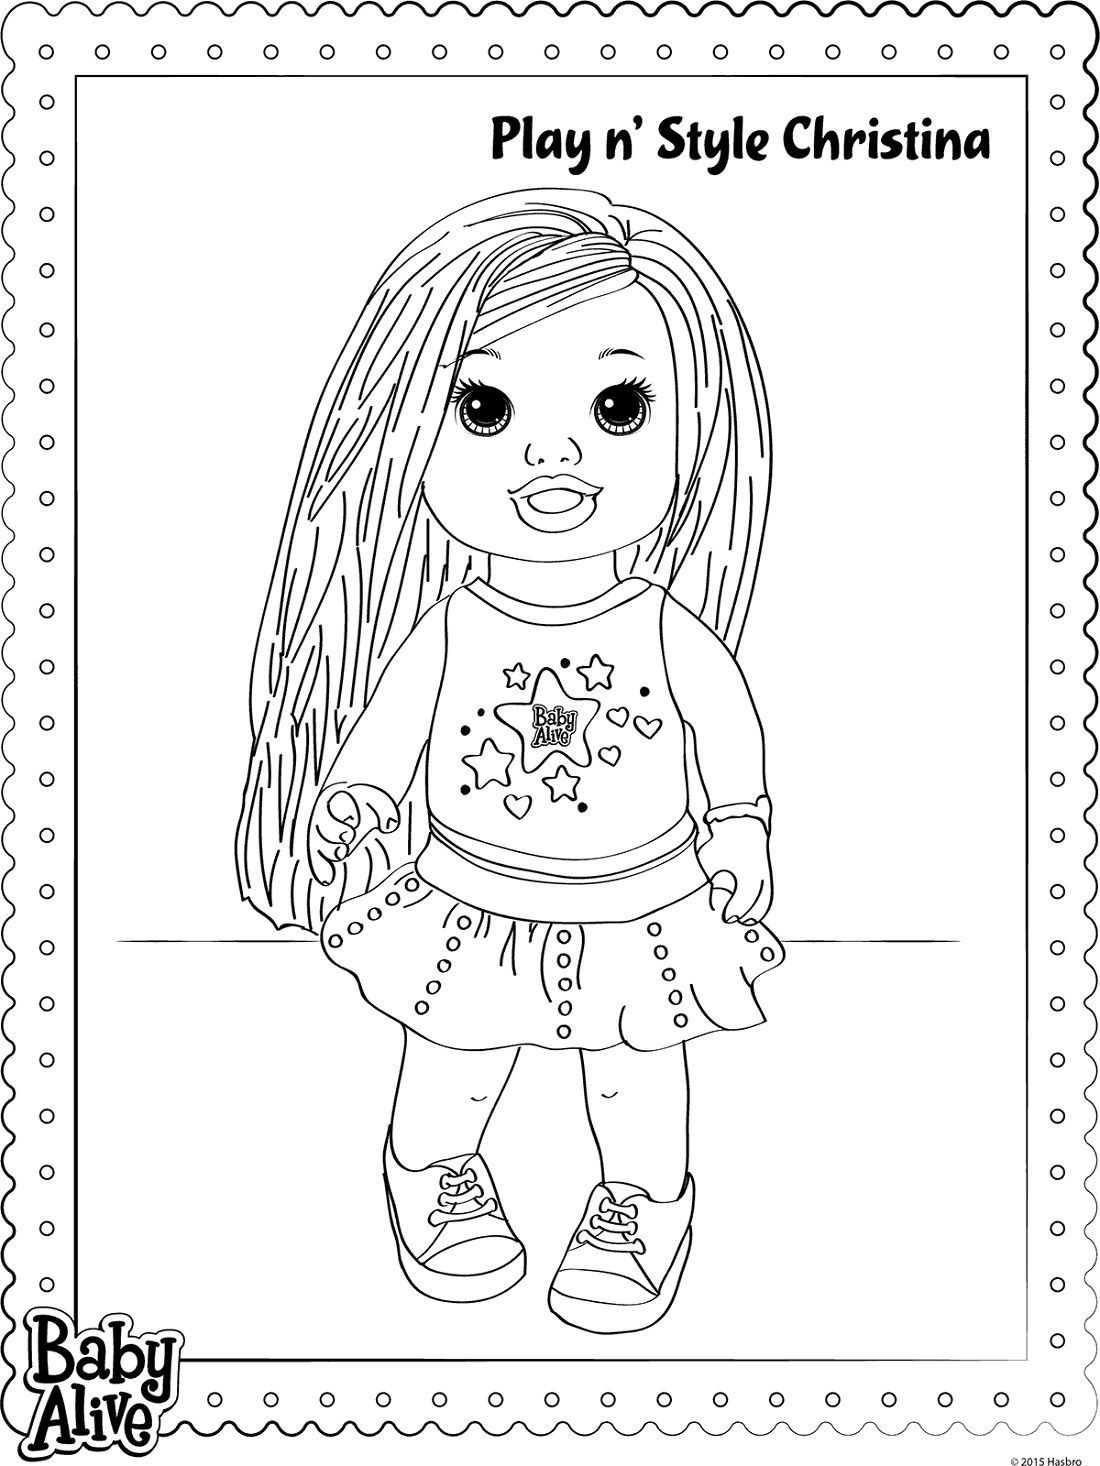 color alive coloring pages baby alive coloring pages educative printable pages coloring color alive